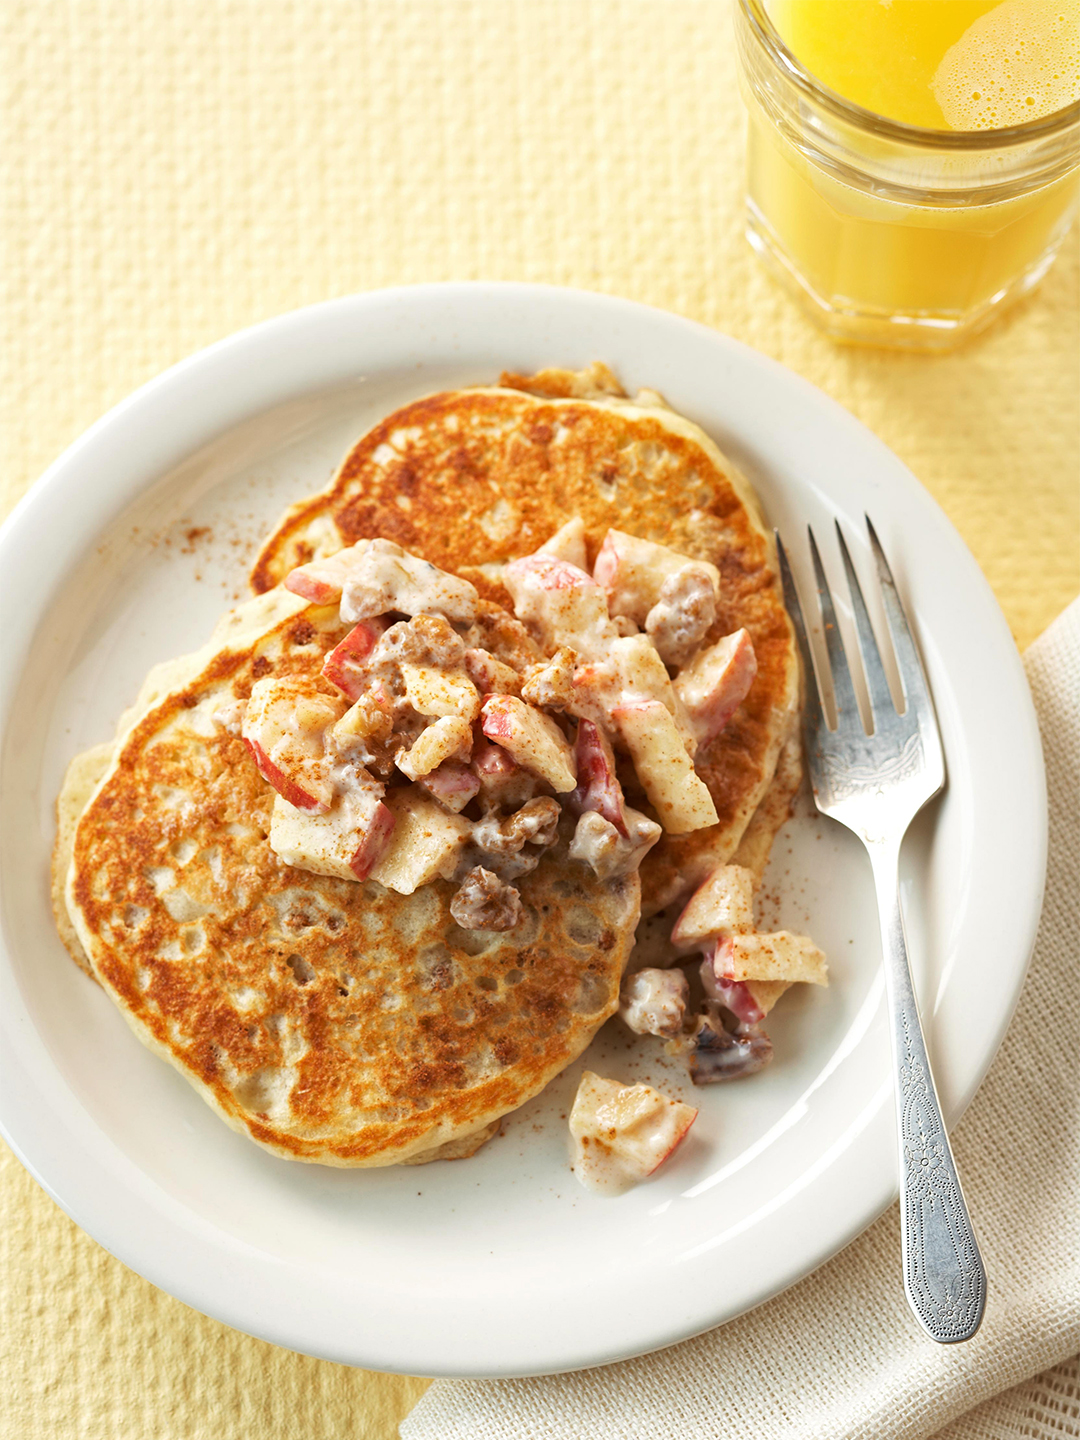 Buttermilk Bran Cakes with Apple-Walnut Topping on plate with glass of orange juice